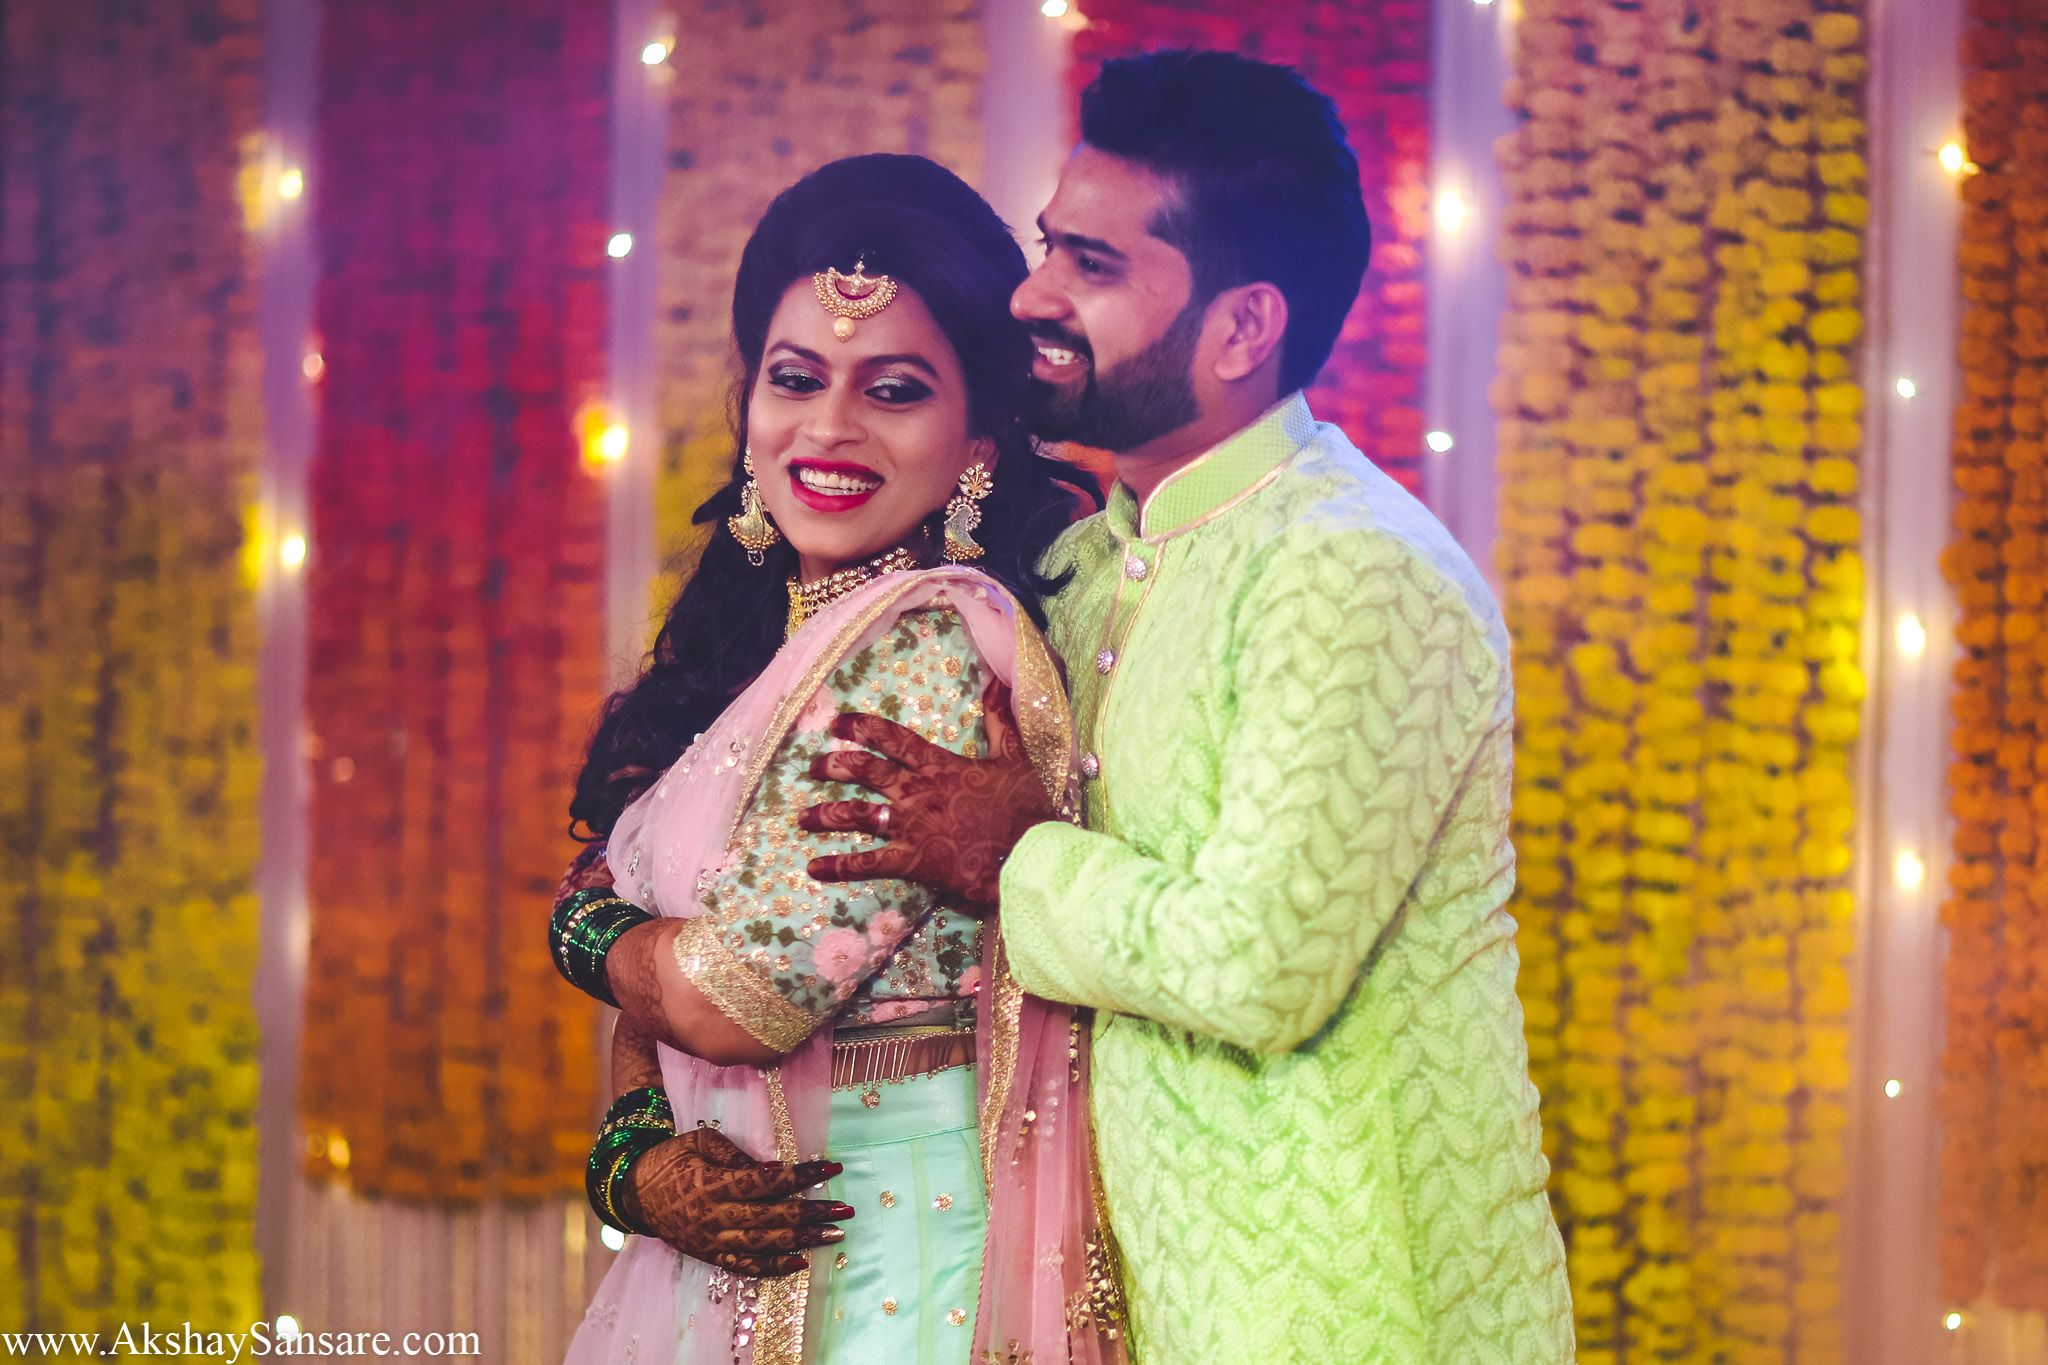 Ajay & Devika Akshay Sansare Photography Best Candid wedding photographer in mumbai india37.jpg